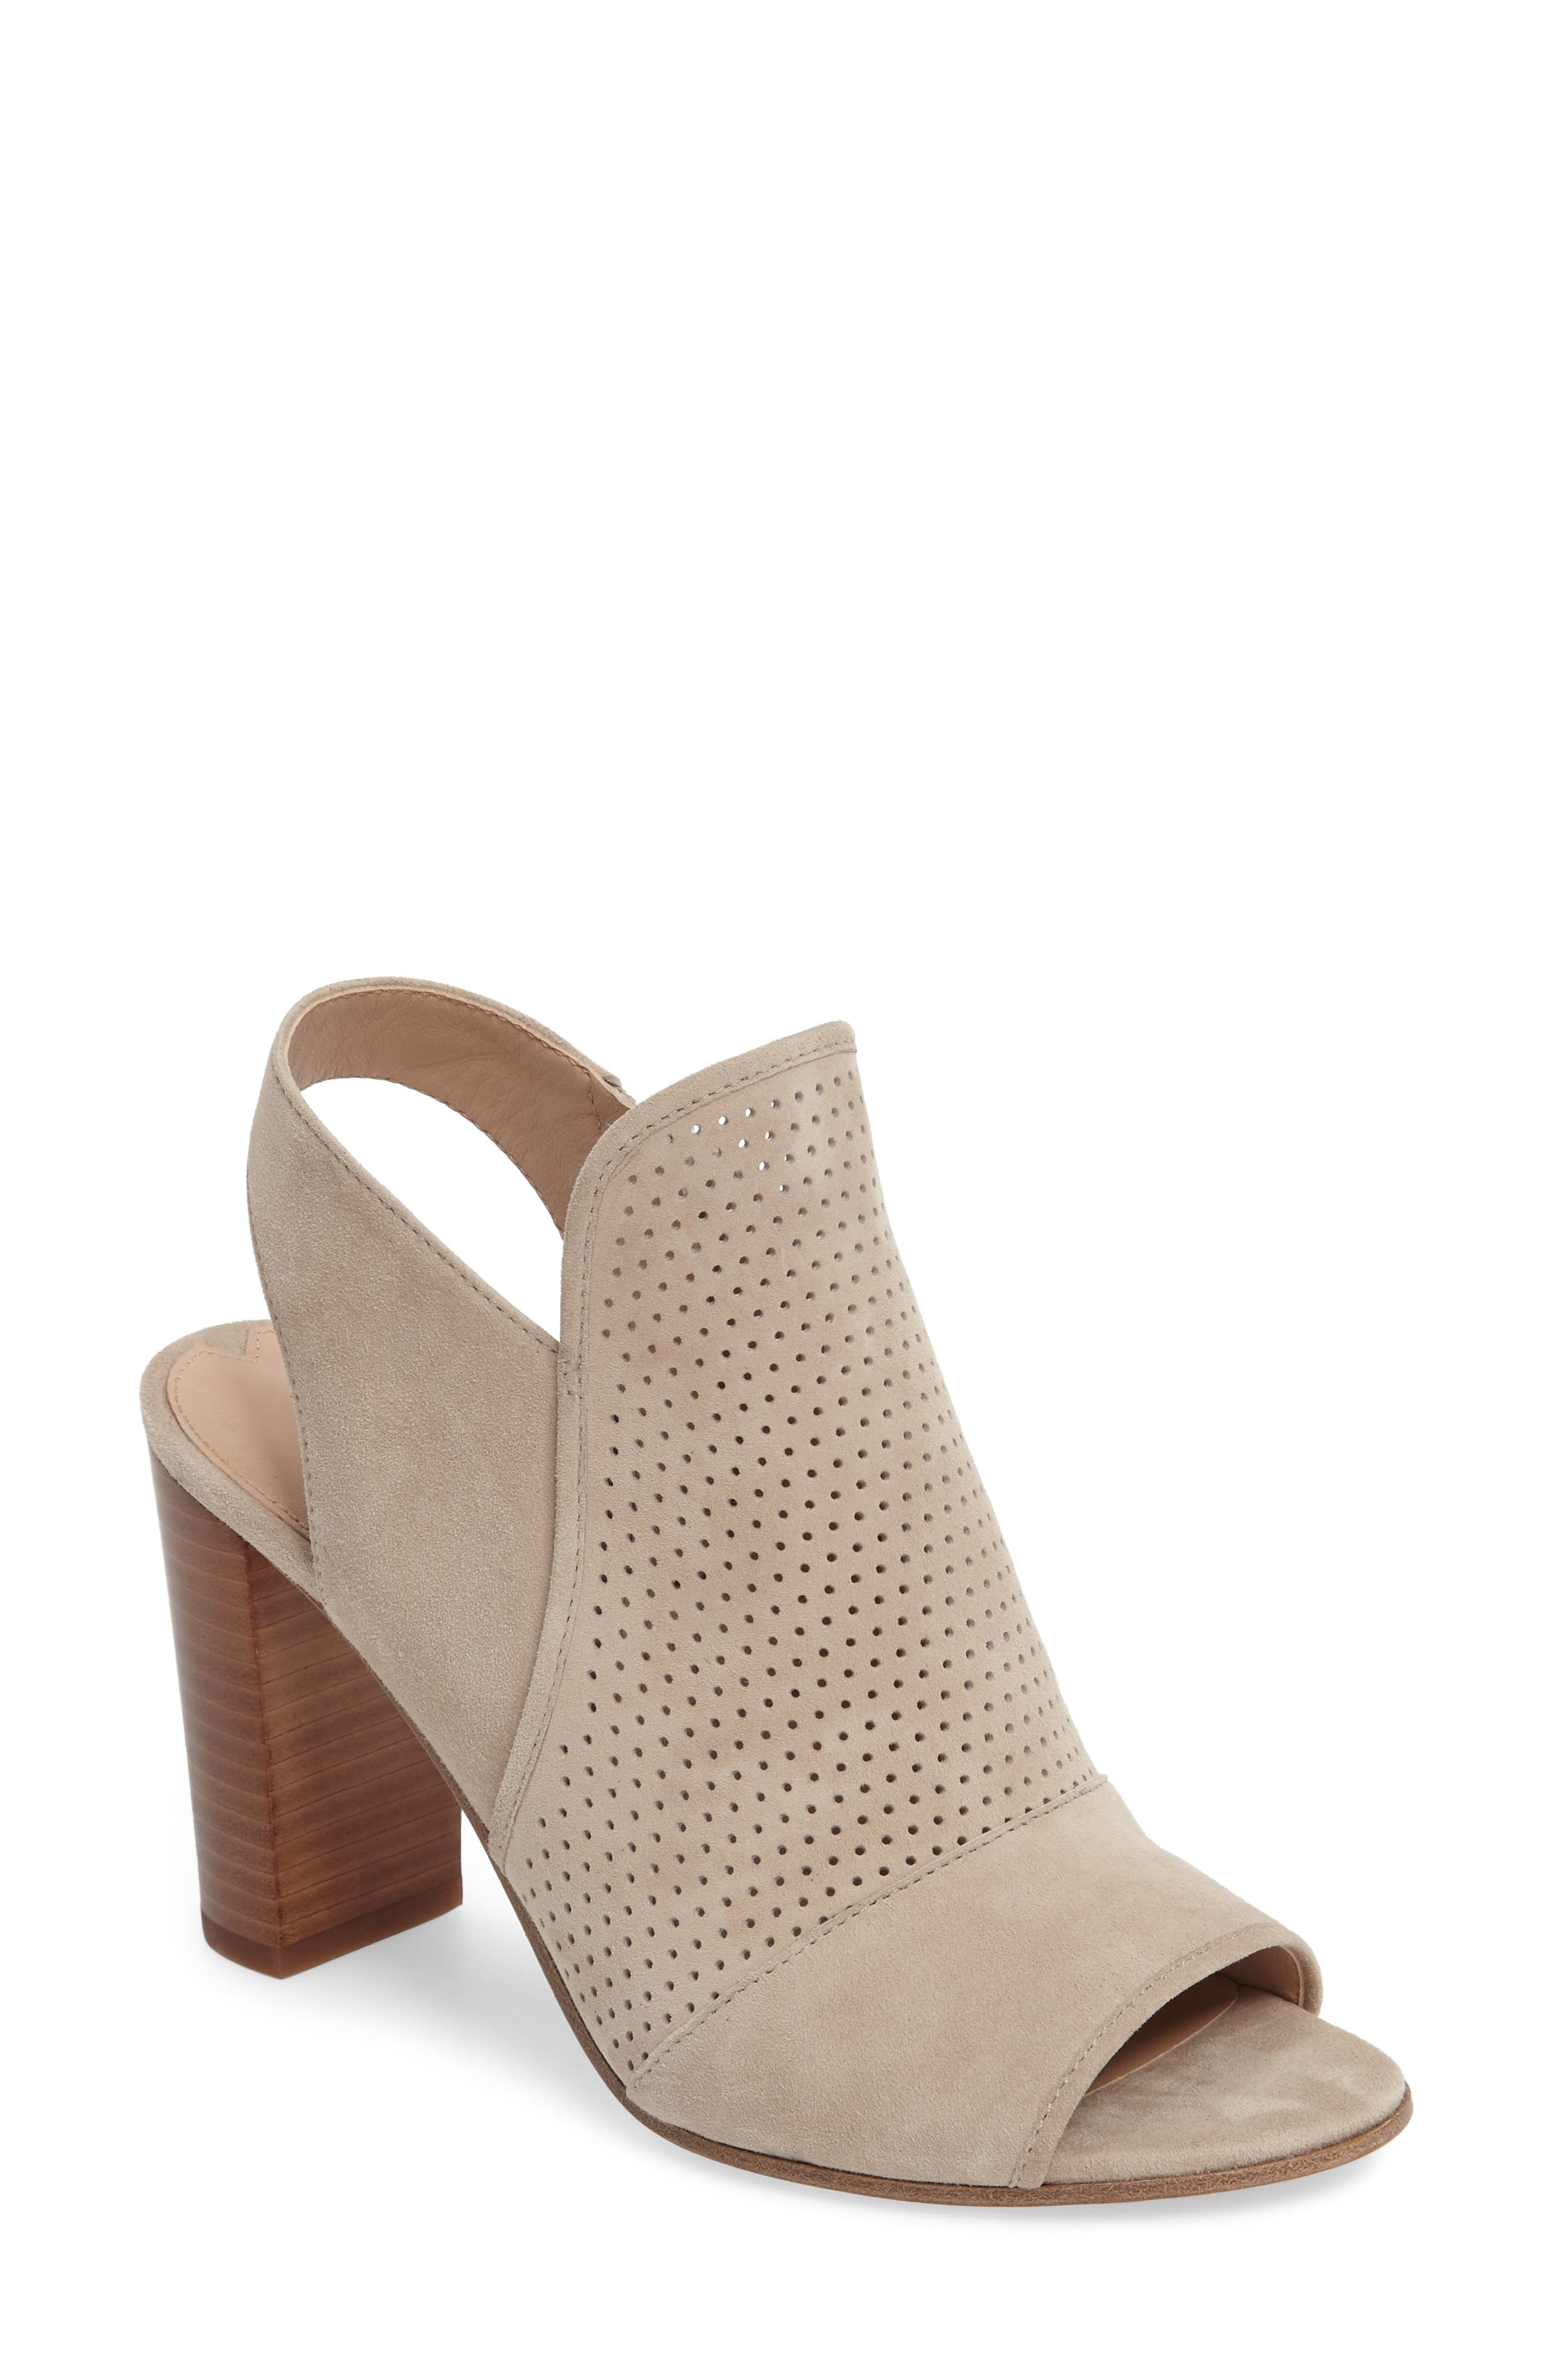 Alternate Image 1 Selected - Via Spiga Gaze Block Heel Sandal (Women)